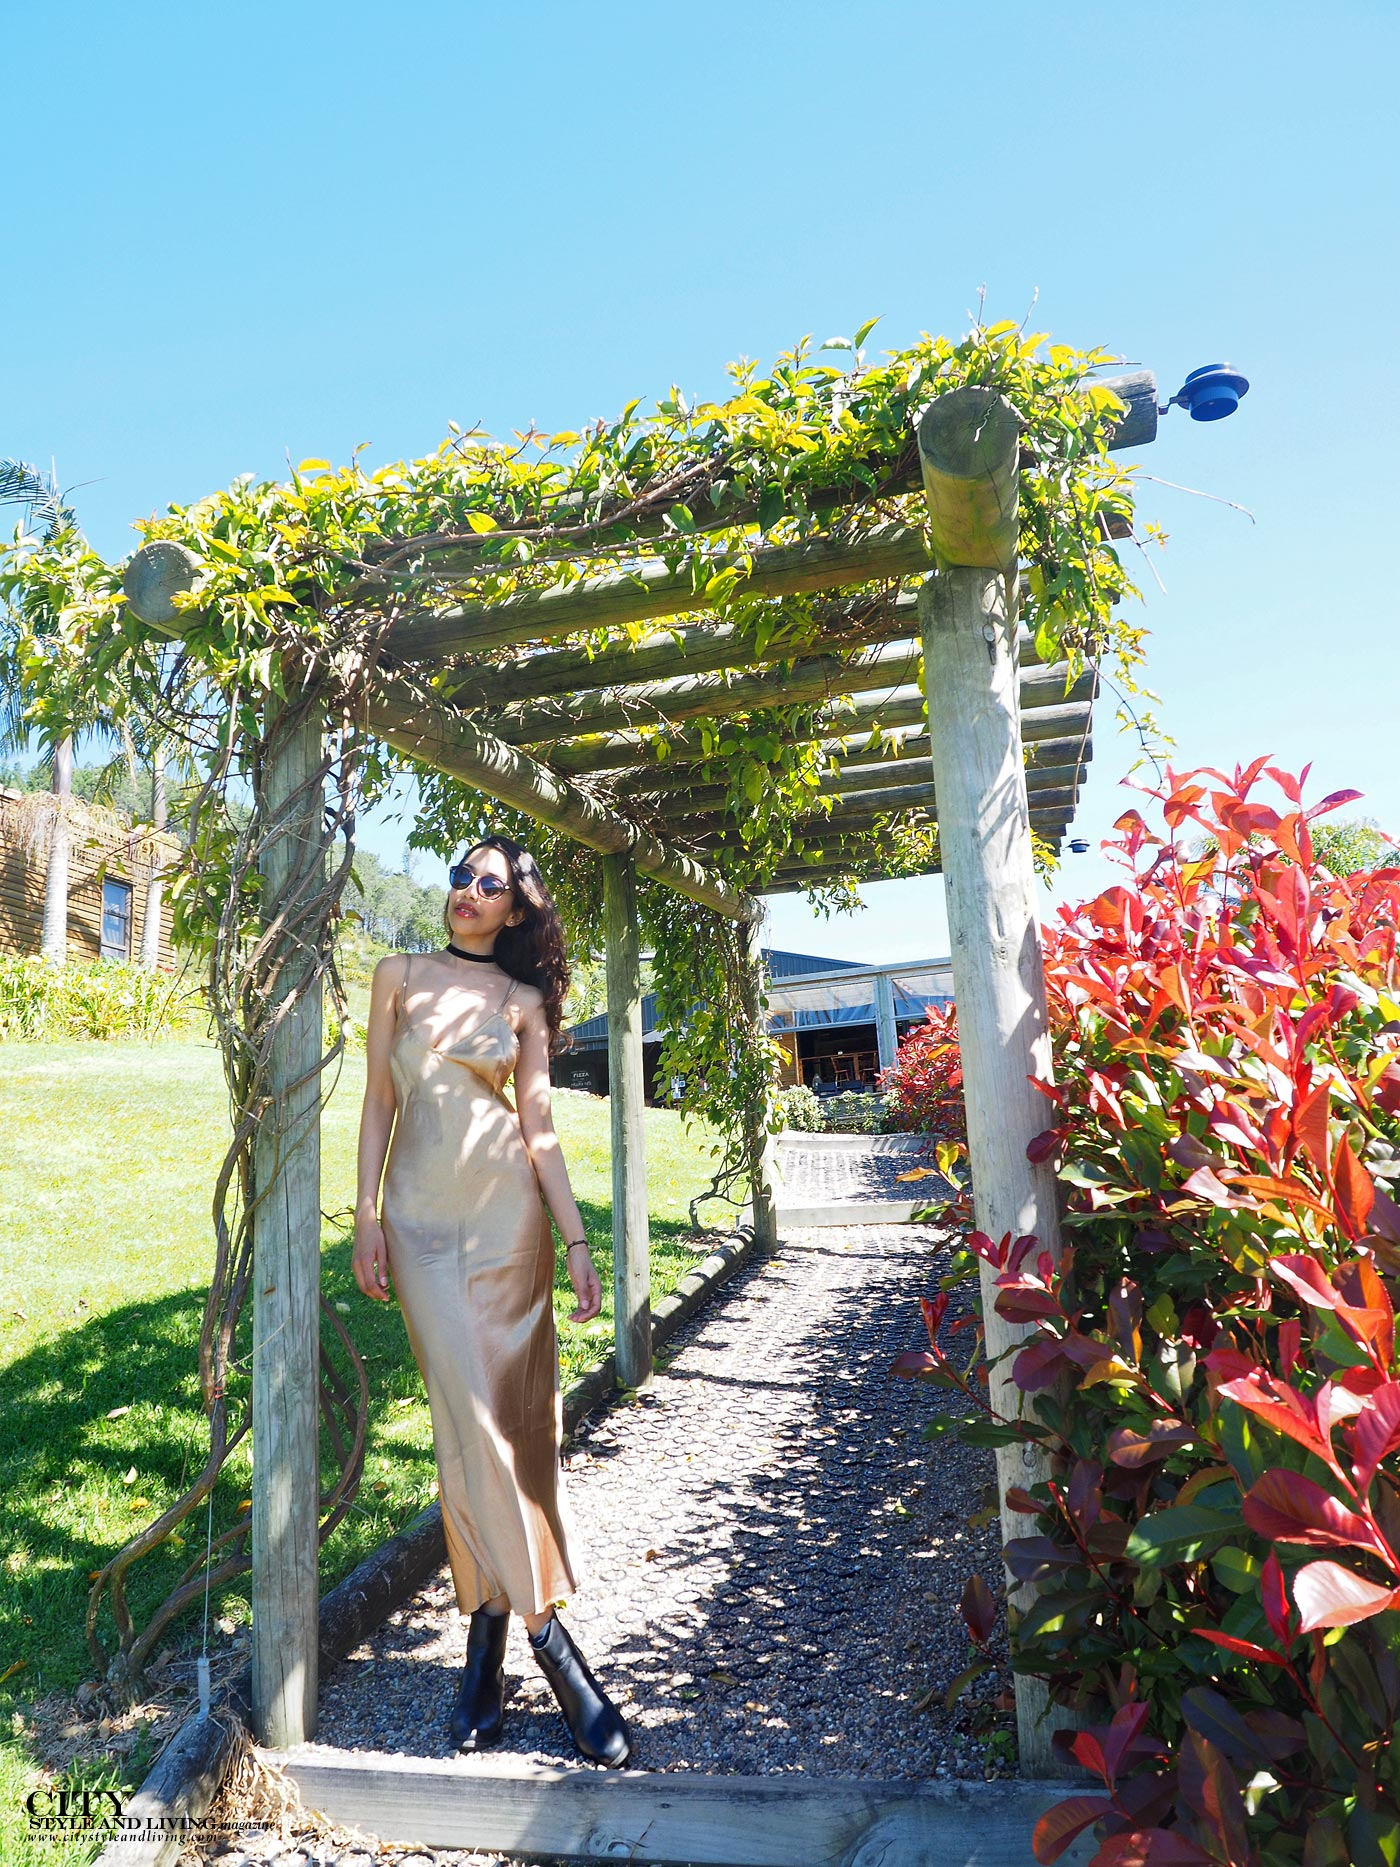 City style and living magazine Editors Notebook style fashion blogger Shivana M Mercury Bay Winery Coromandel New Zealand Gold dress by trellis